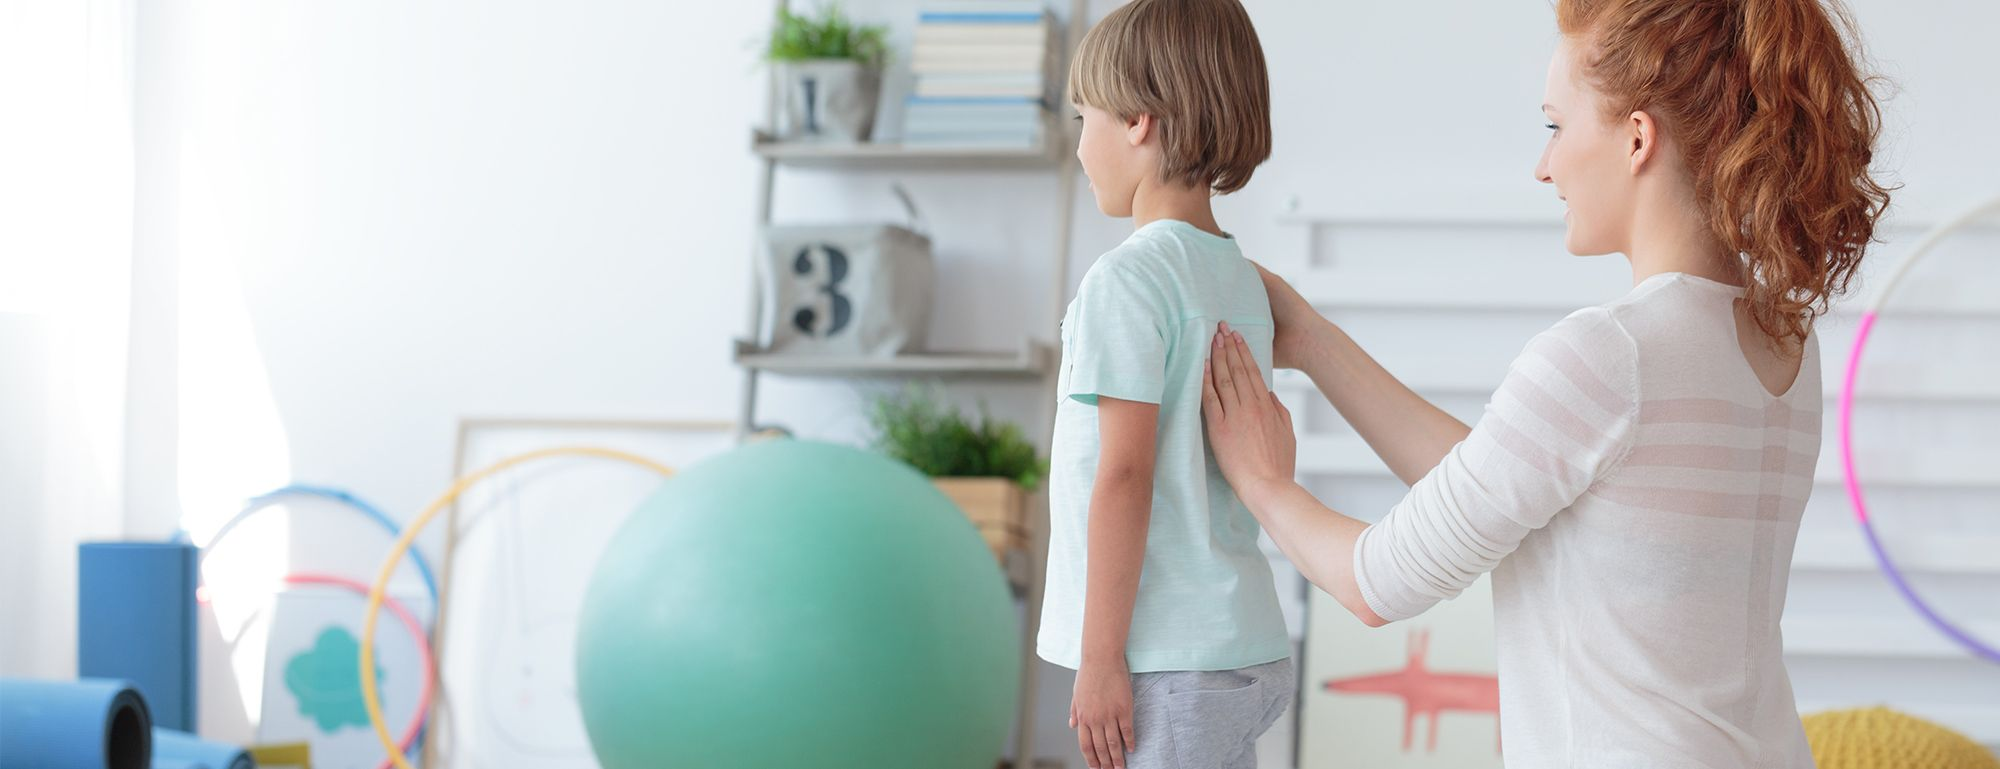 Non-Surgical Scoliosis Treatments | San Diego Chiropractor